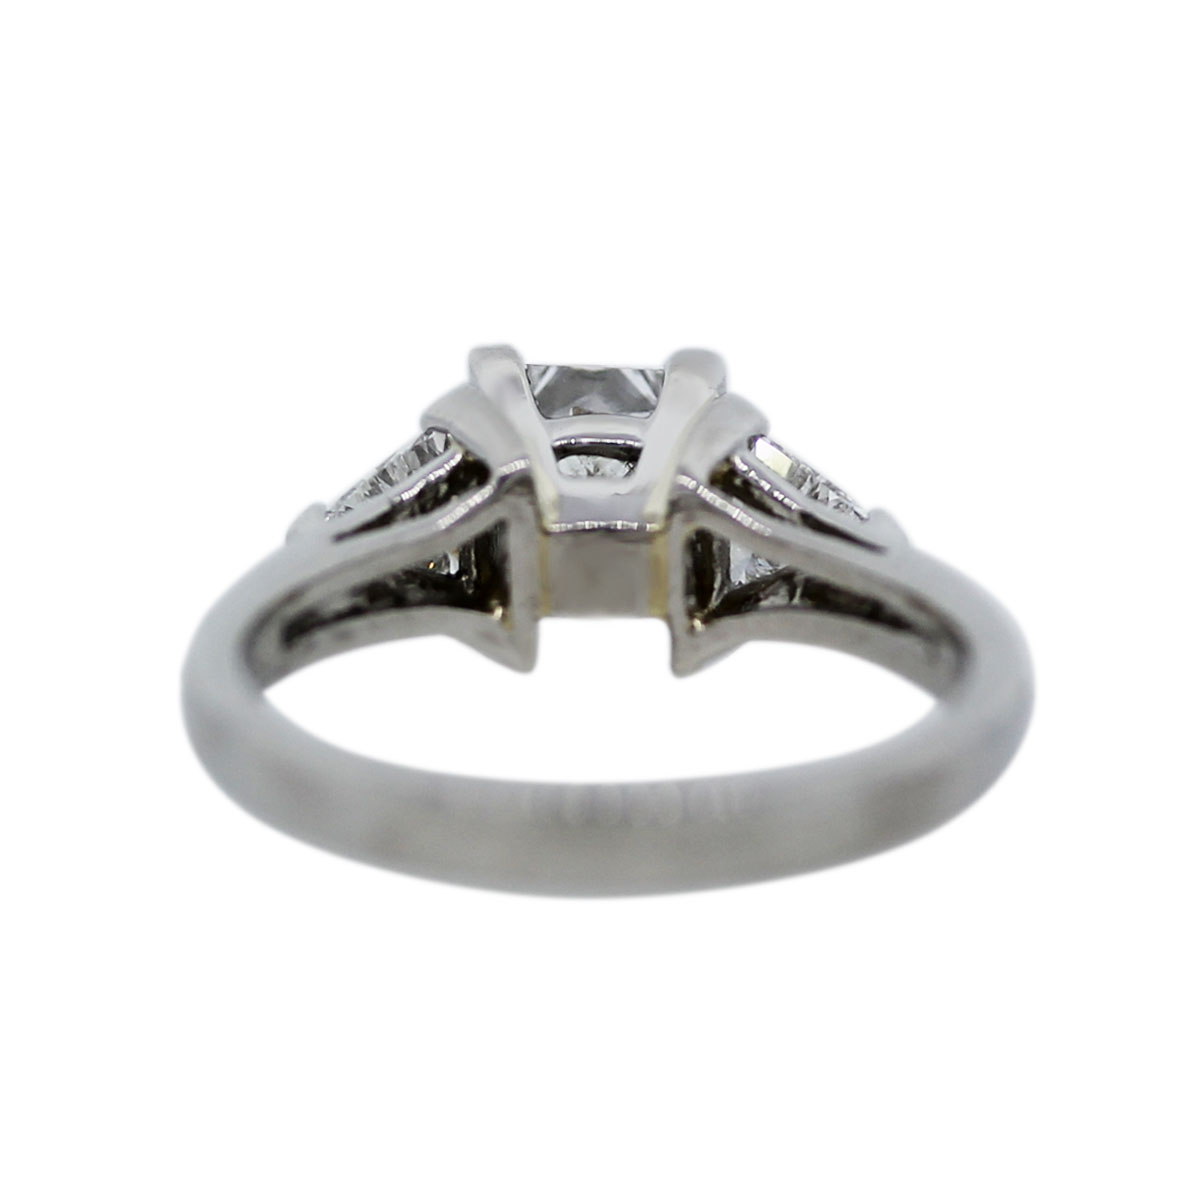 Princess Cut & Trillion Cut Diamond Ring